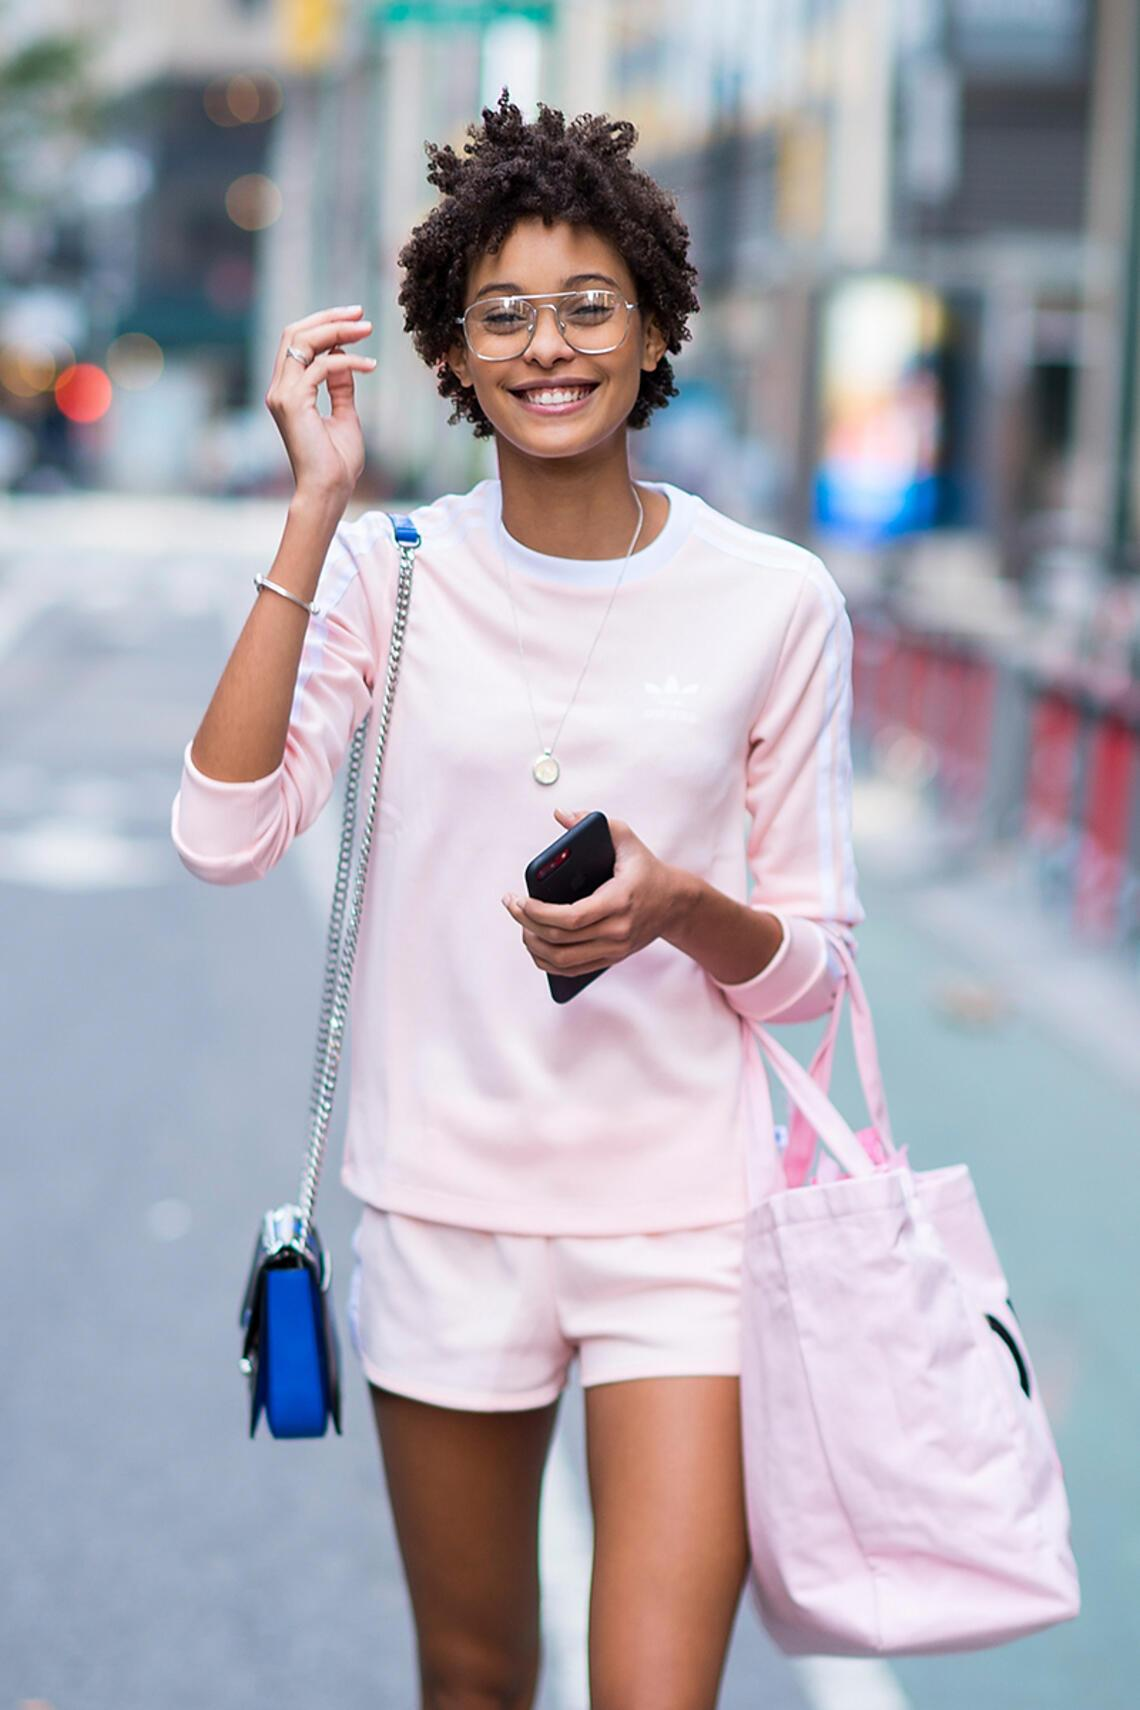 Look of the Day – Samile Bermannelli, Model